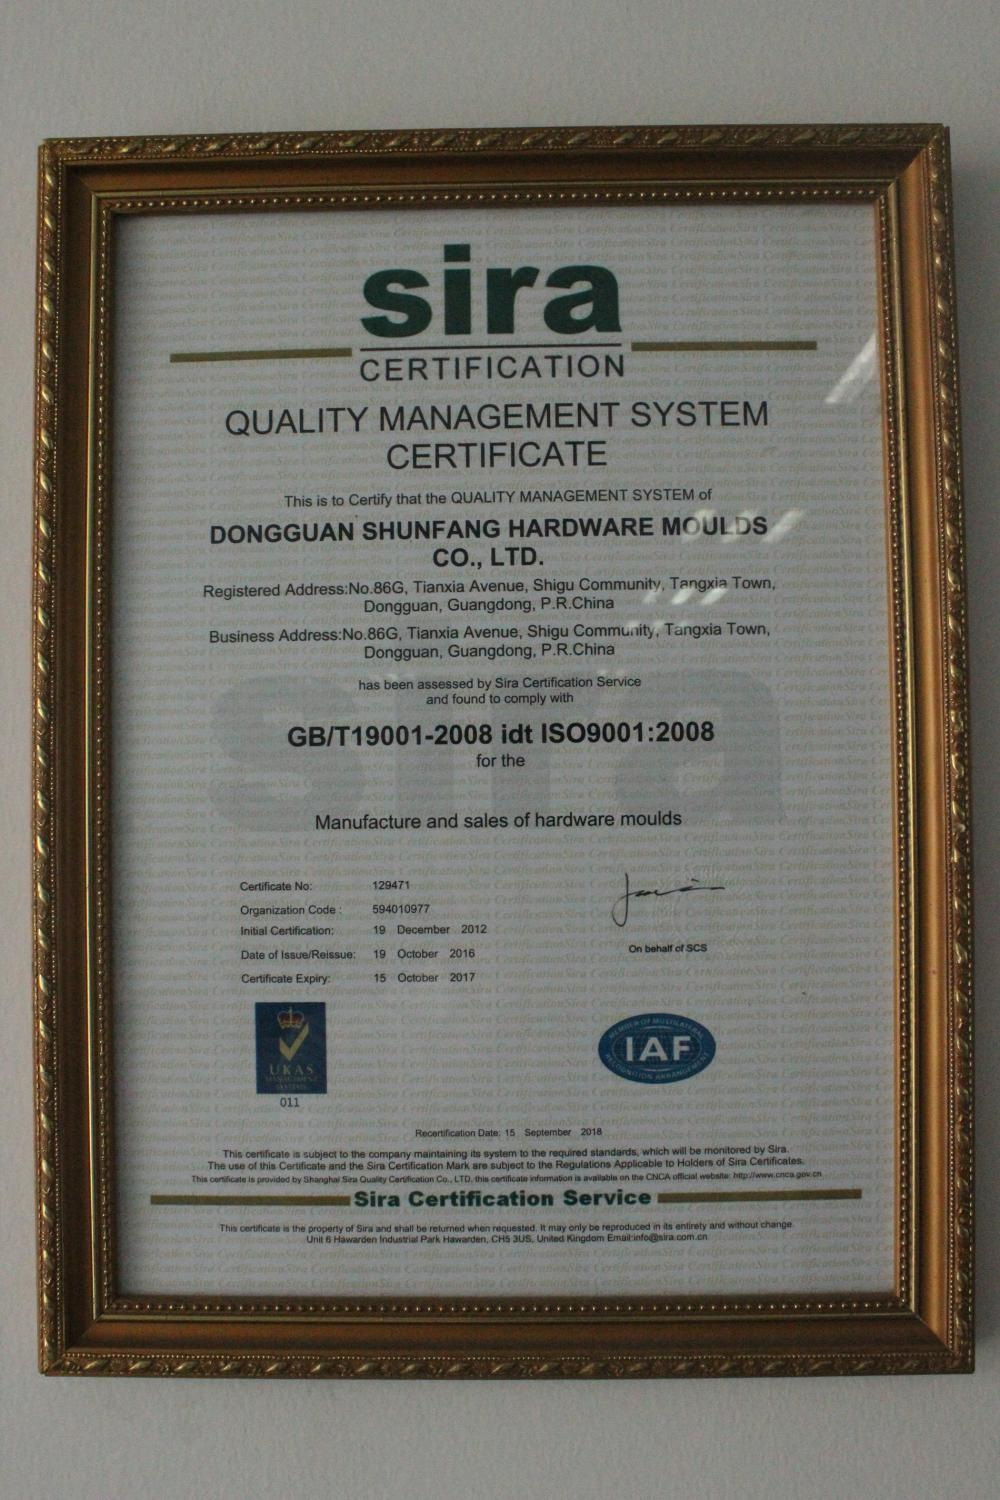 Sira Certification